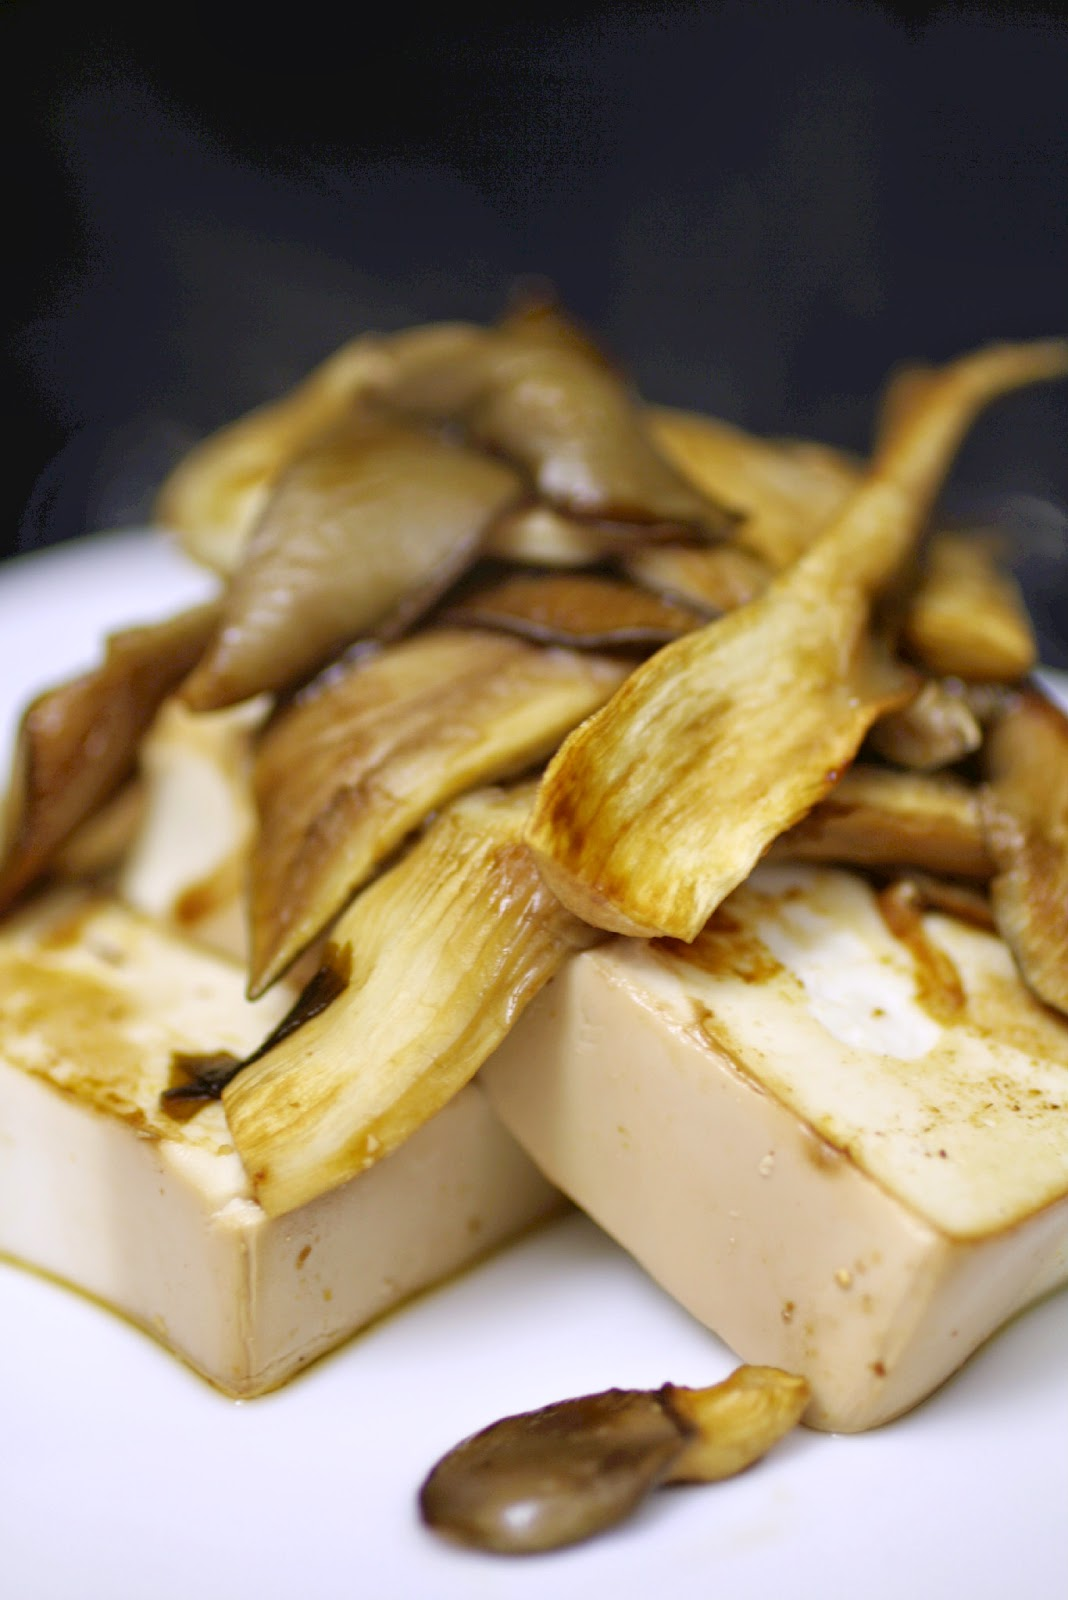 Home grown oyster mushrooms with griddled tofu.  I wanted the mushrooms to be the star of the dish so used a simple marinade for the tofu using soy sauce, miso paste and sesame oil.